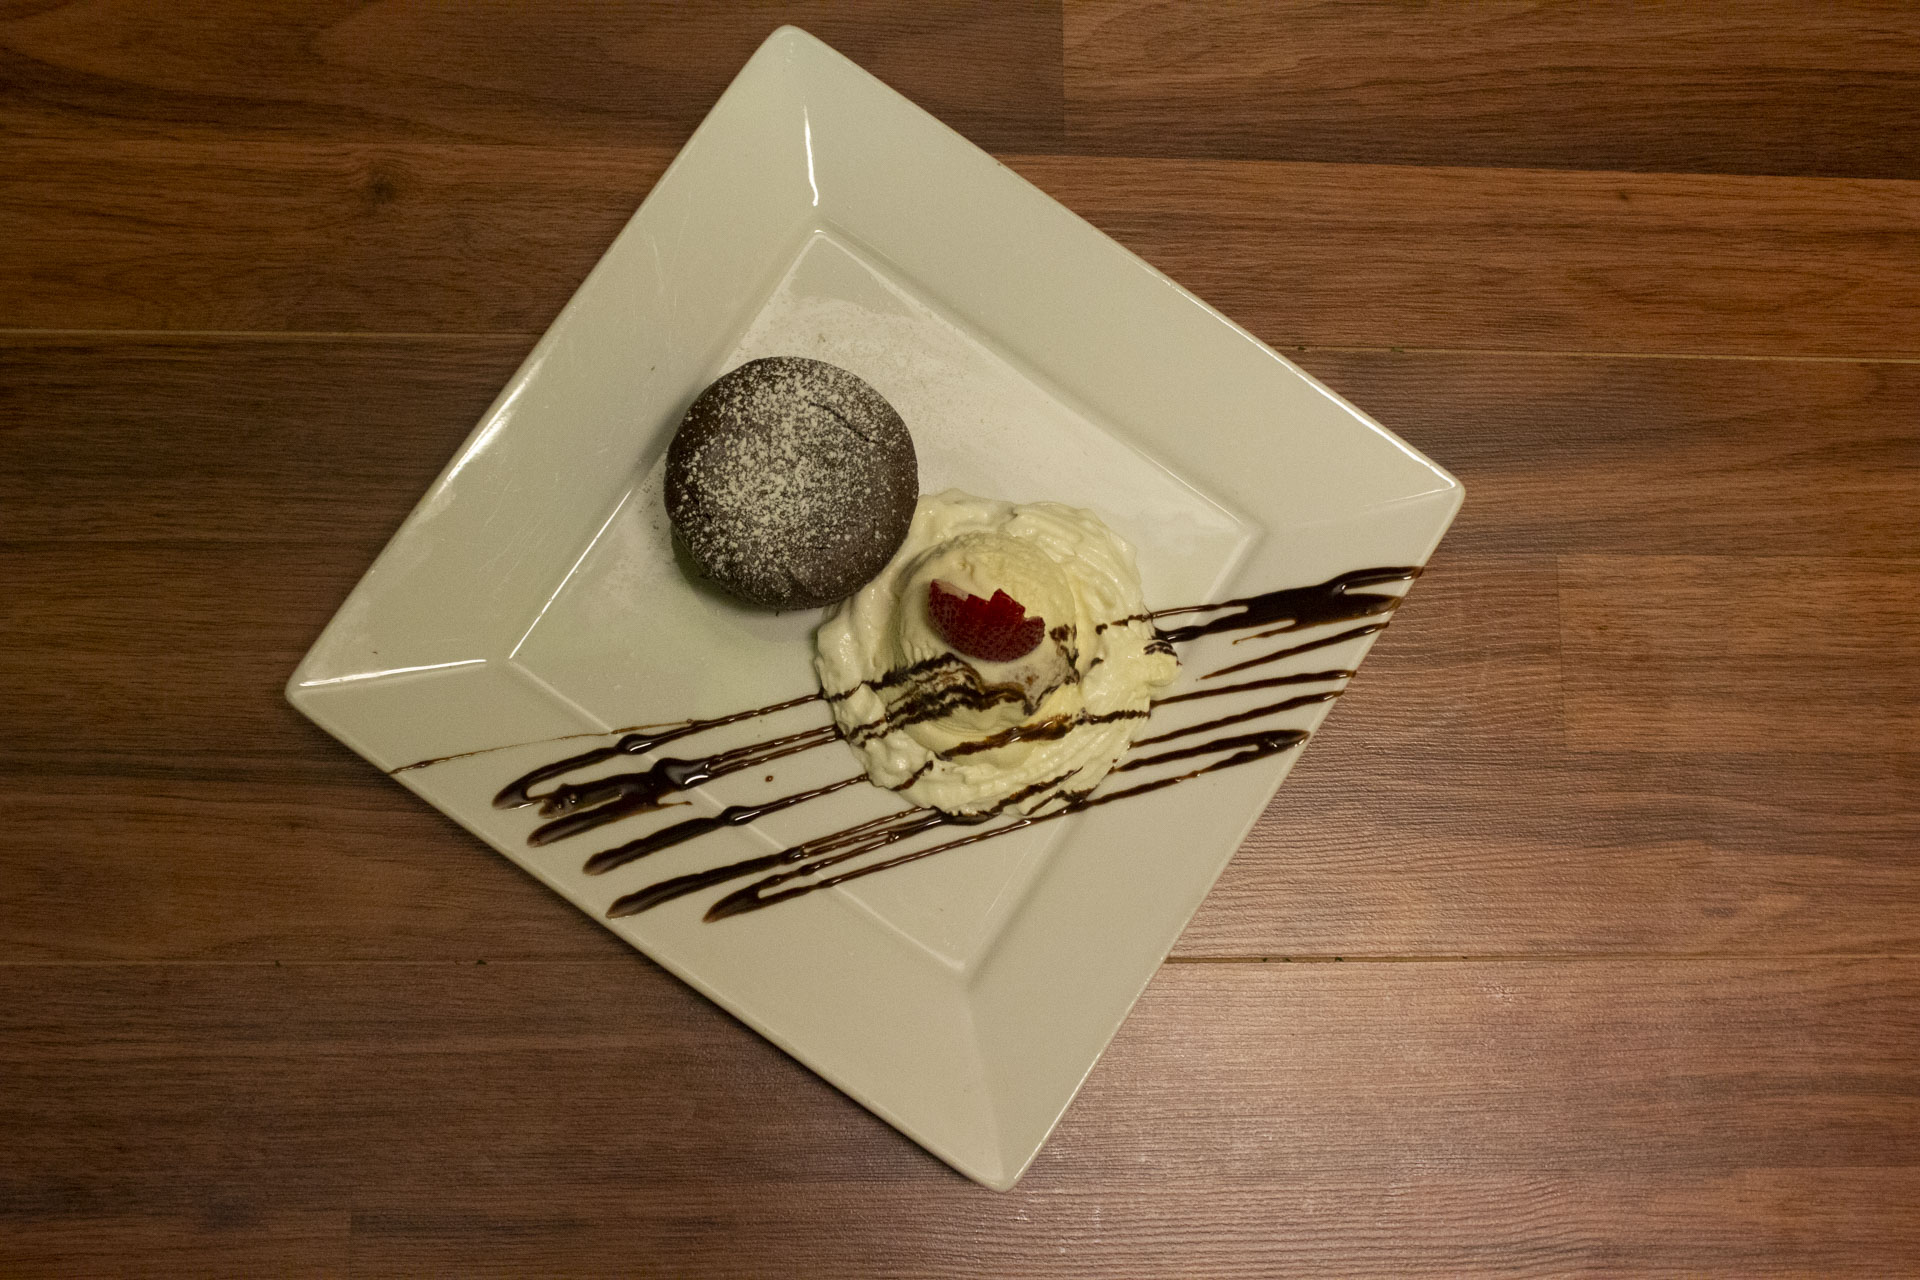 Chocolate souffle with a side of ice cream